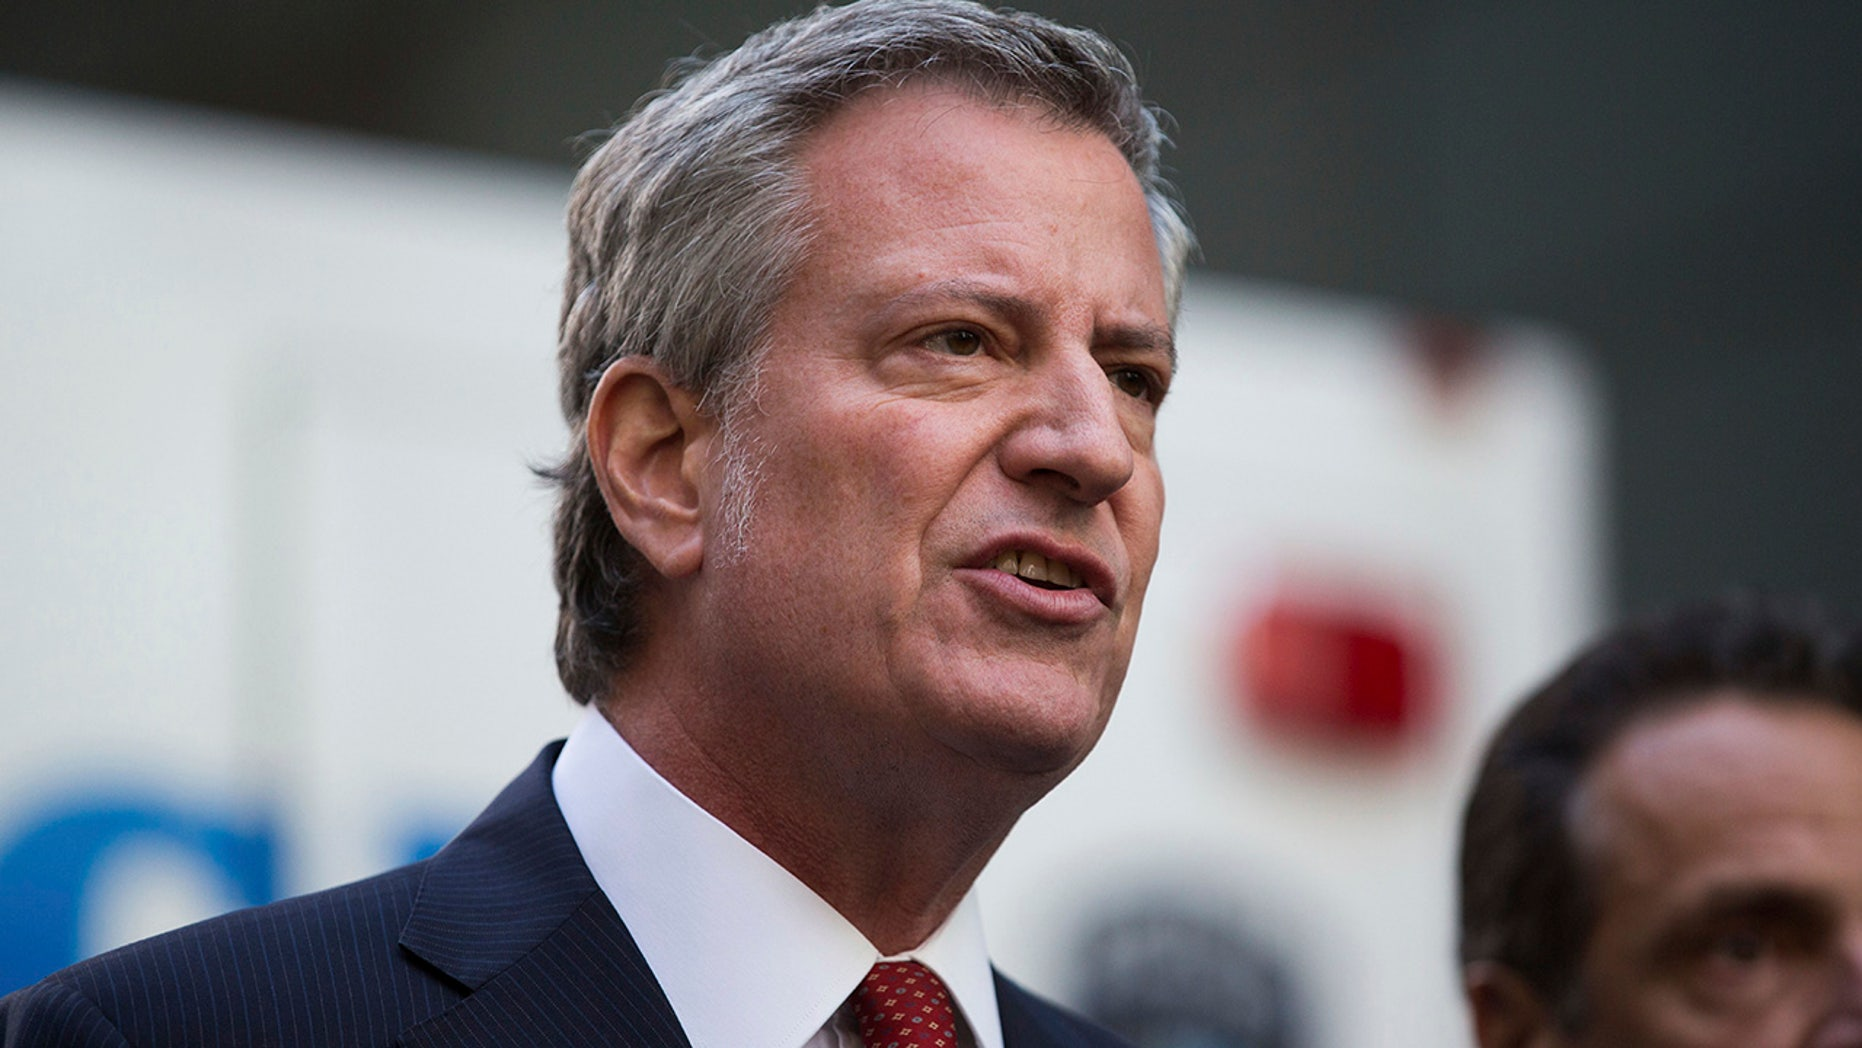 New York City Mayor Bill de Blasio forgot to pay tribute to the victim's of last year's Halloween terror attack at their own memorial on Wednesday.